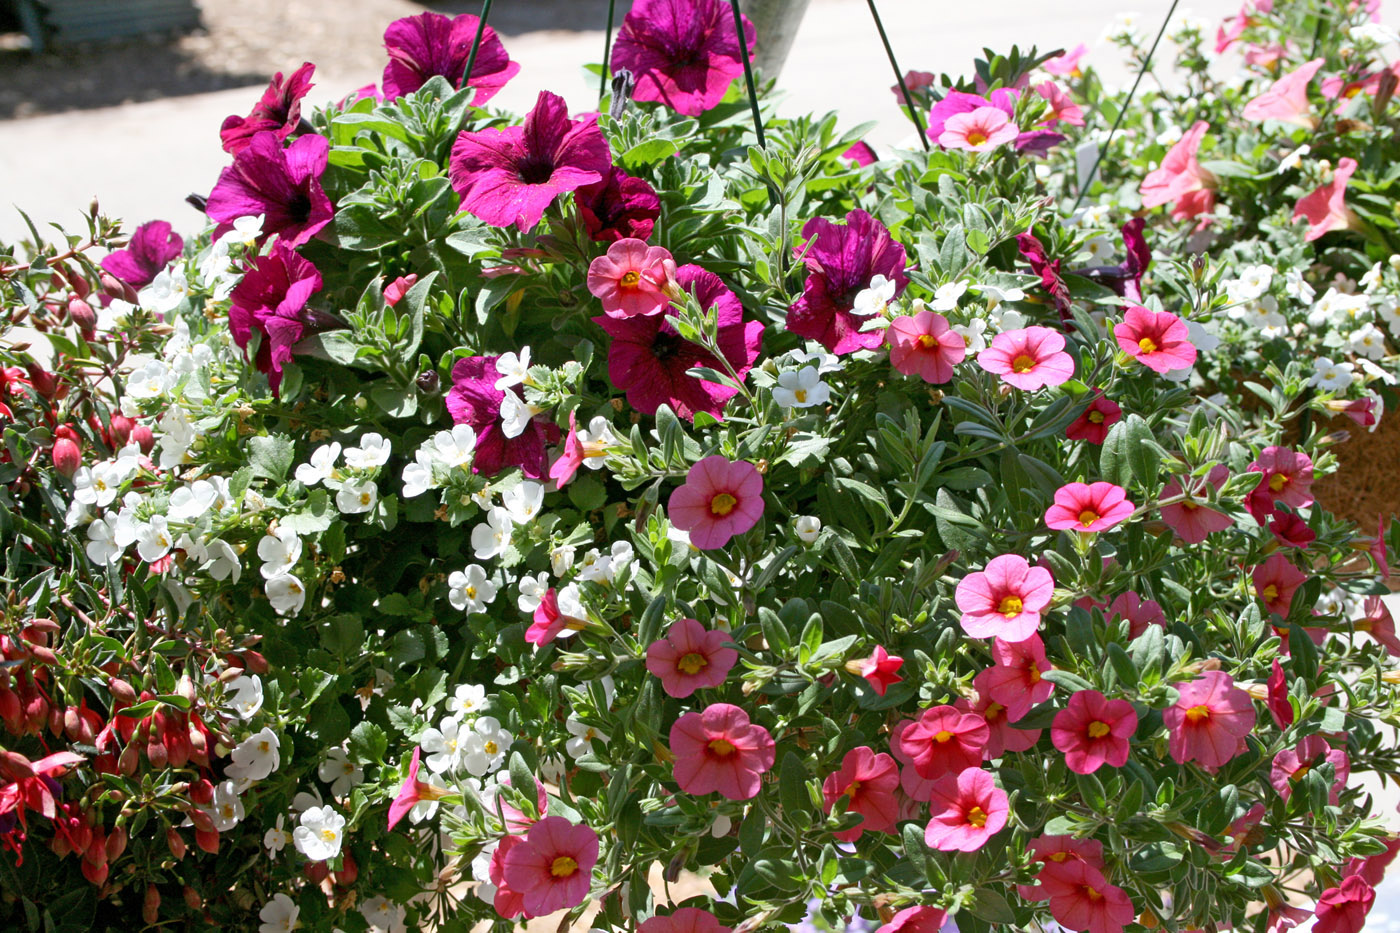 Gardening tips help save time Mississippi State University